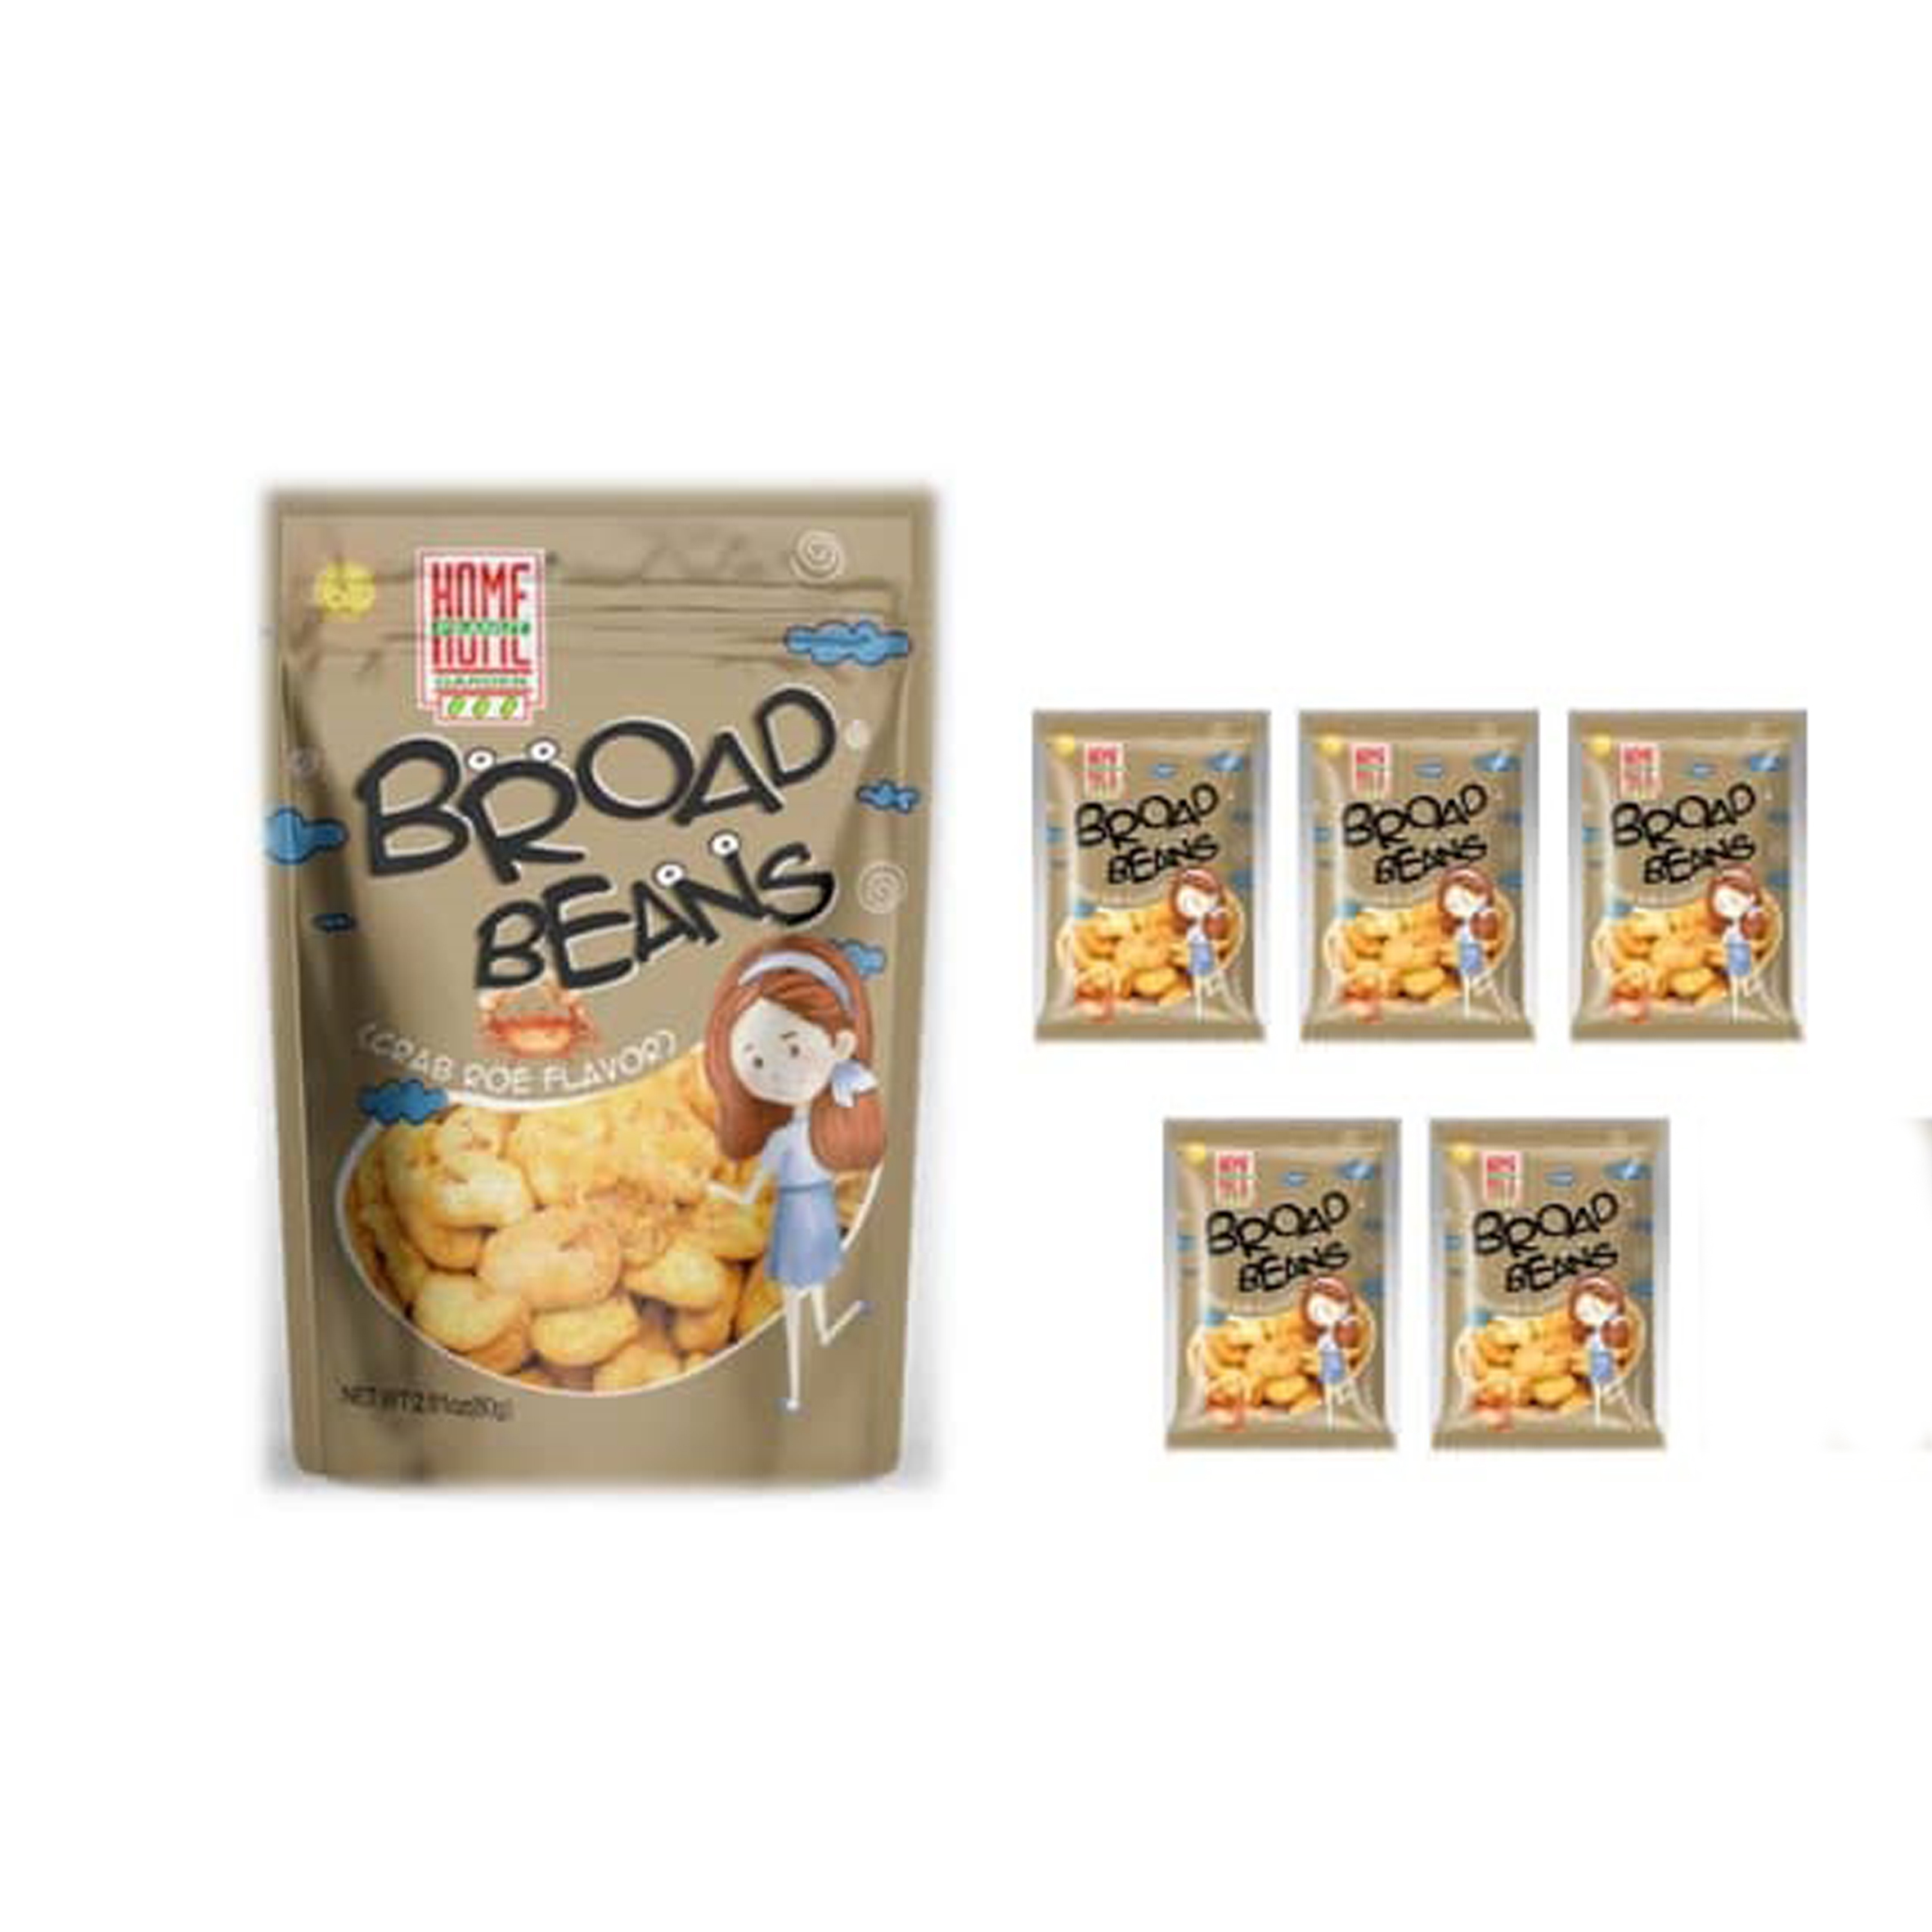 BroadBean Crab Roe Flavour HPG Packaging.jpg